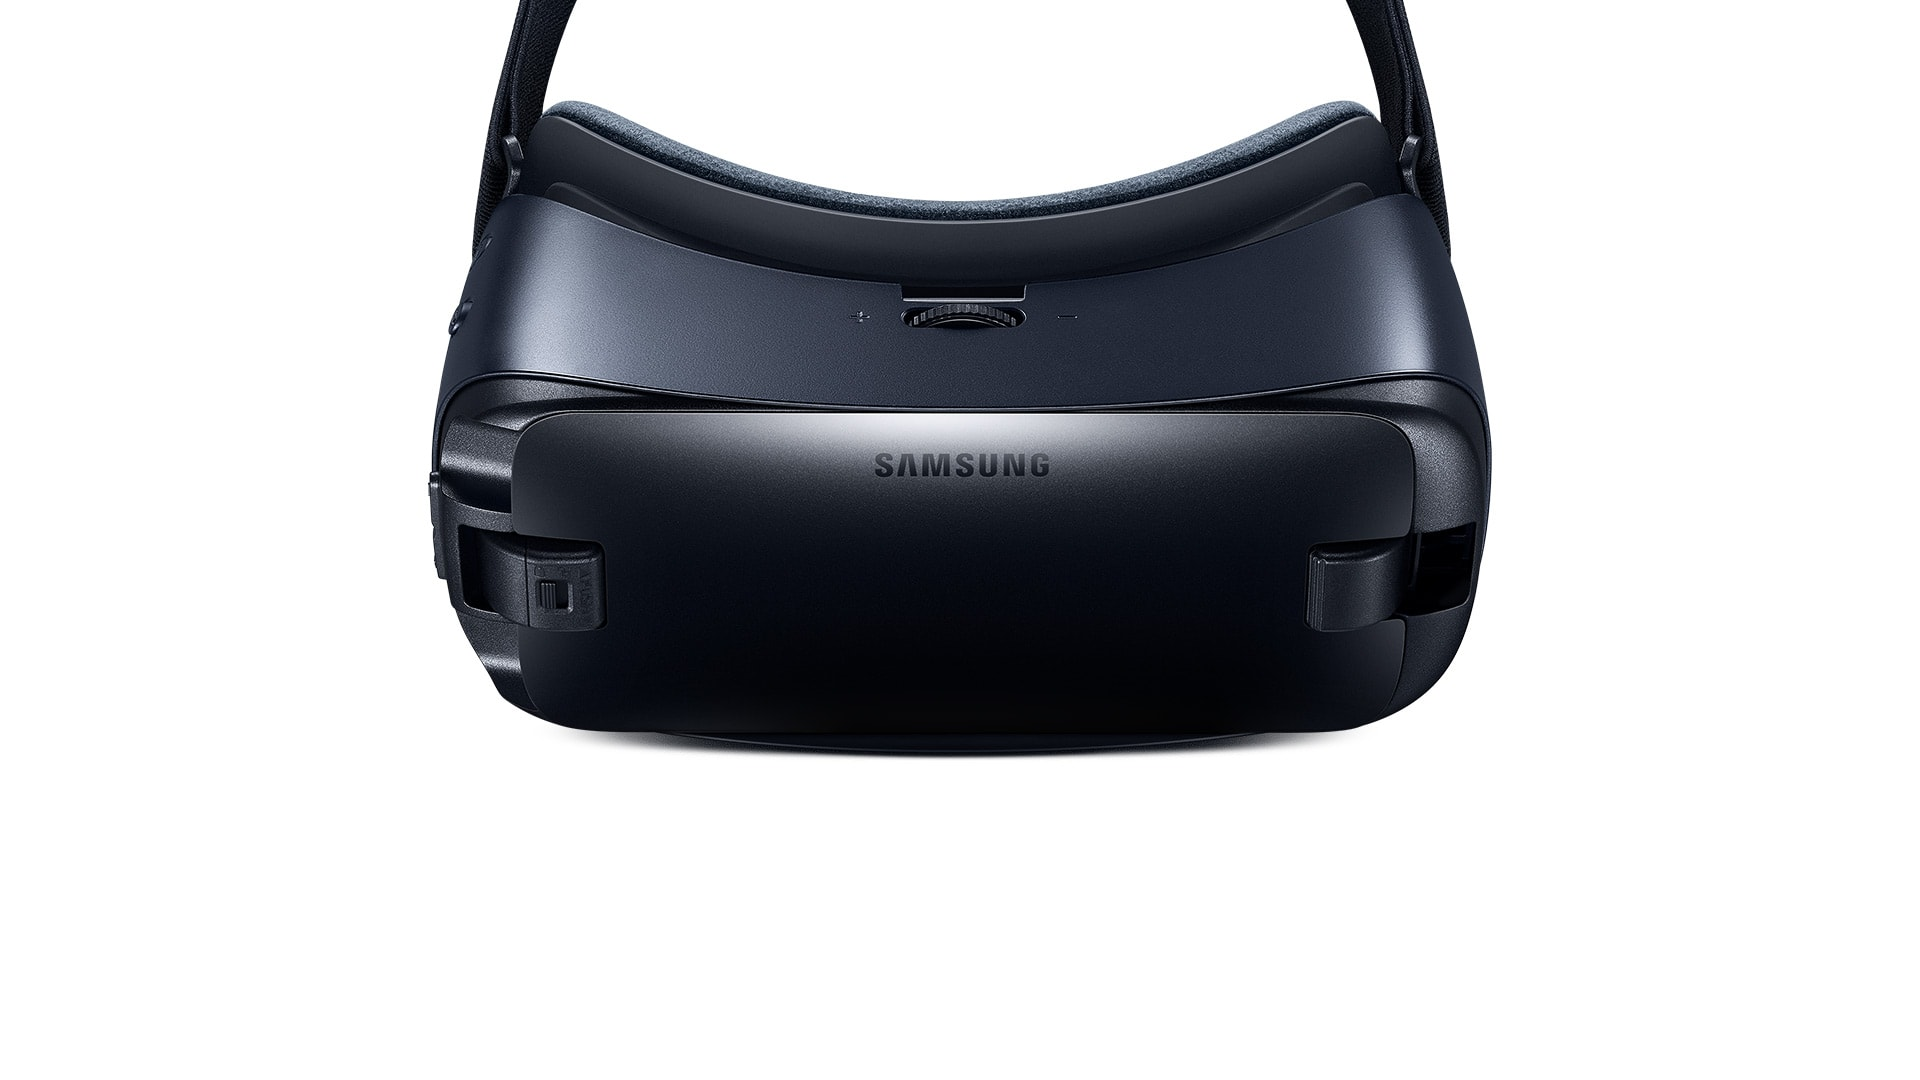 Samsung Gear VR Top View